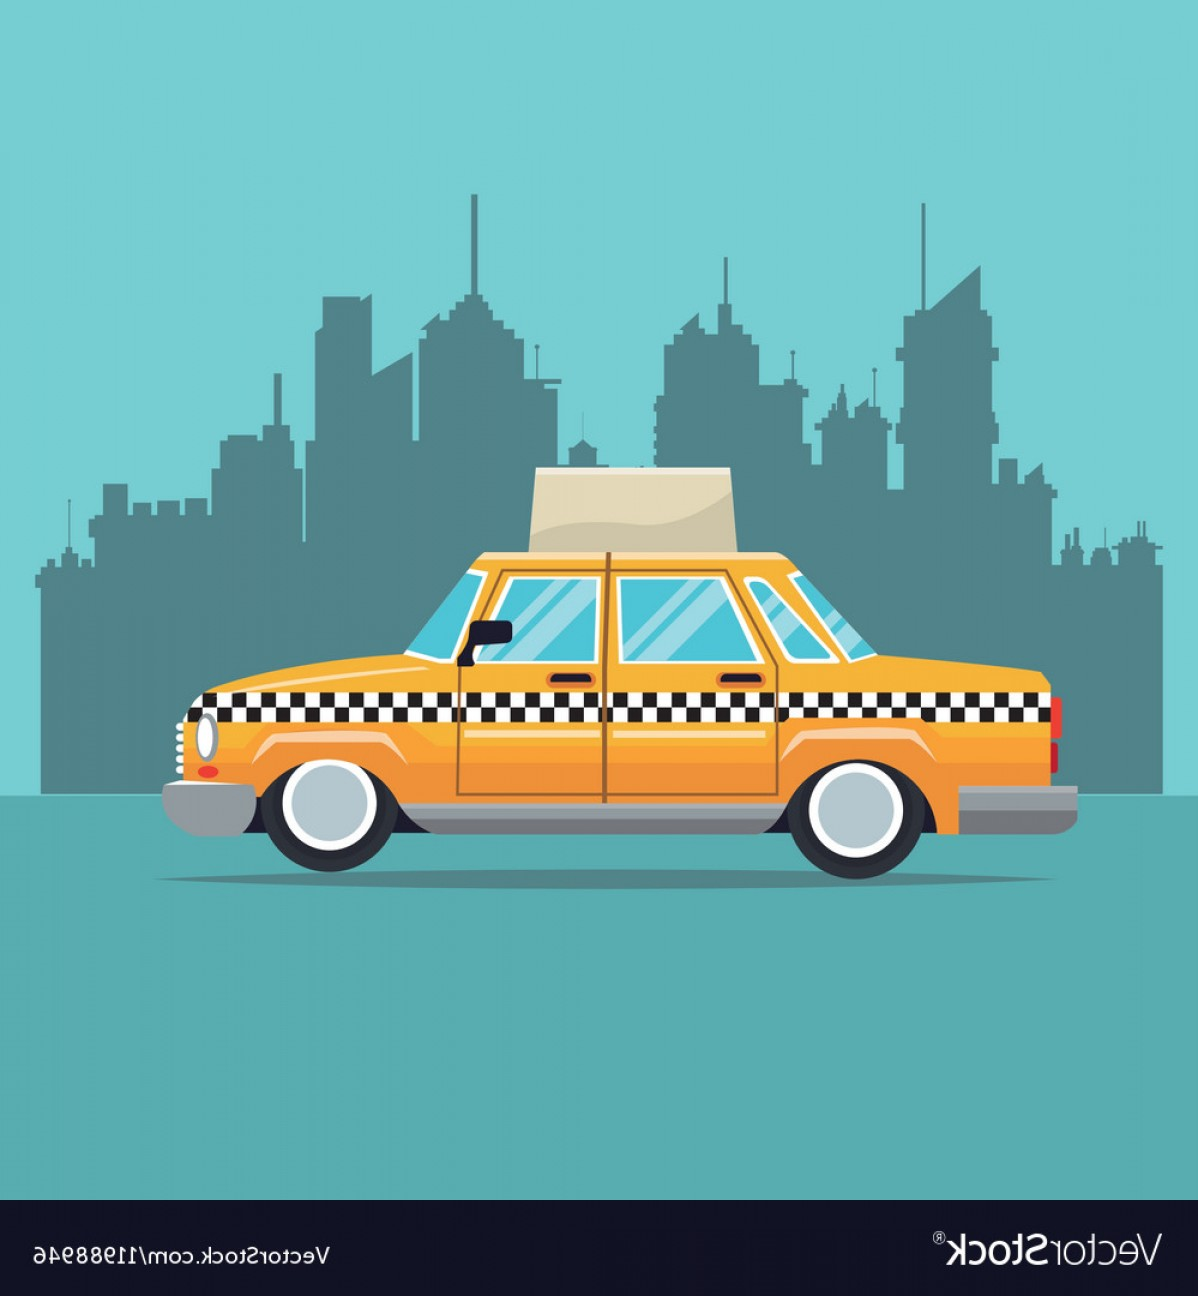 New York Taxi Cab Vector: Taxi Car New York Side View Town Background Vector